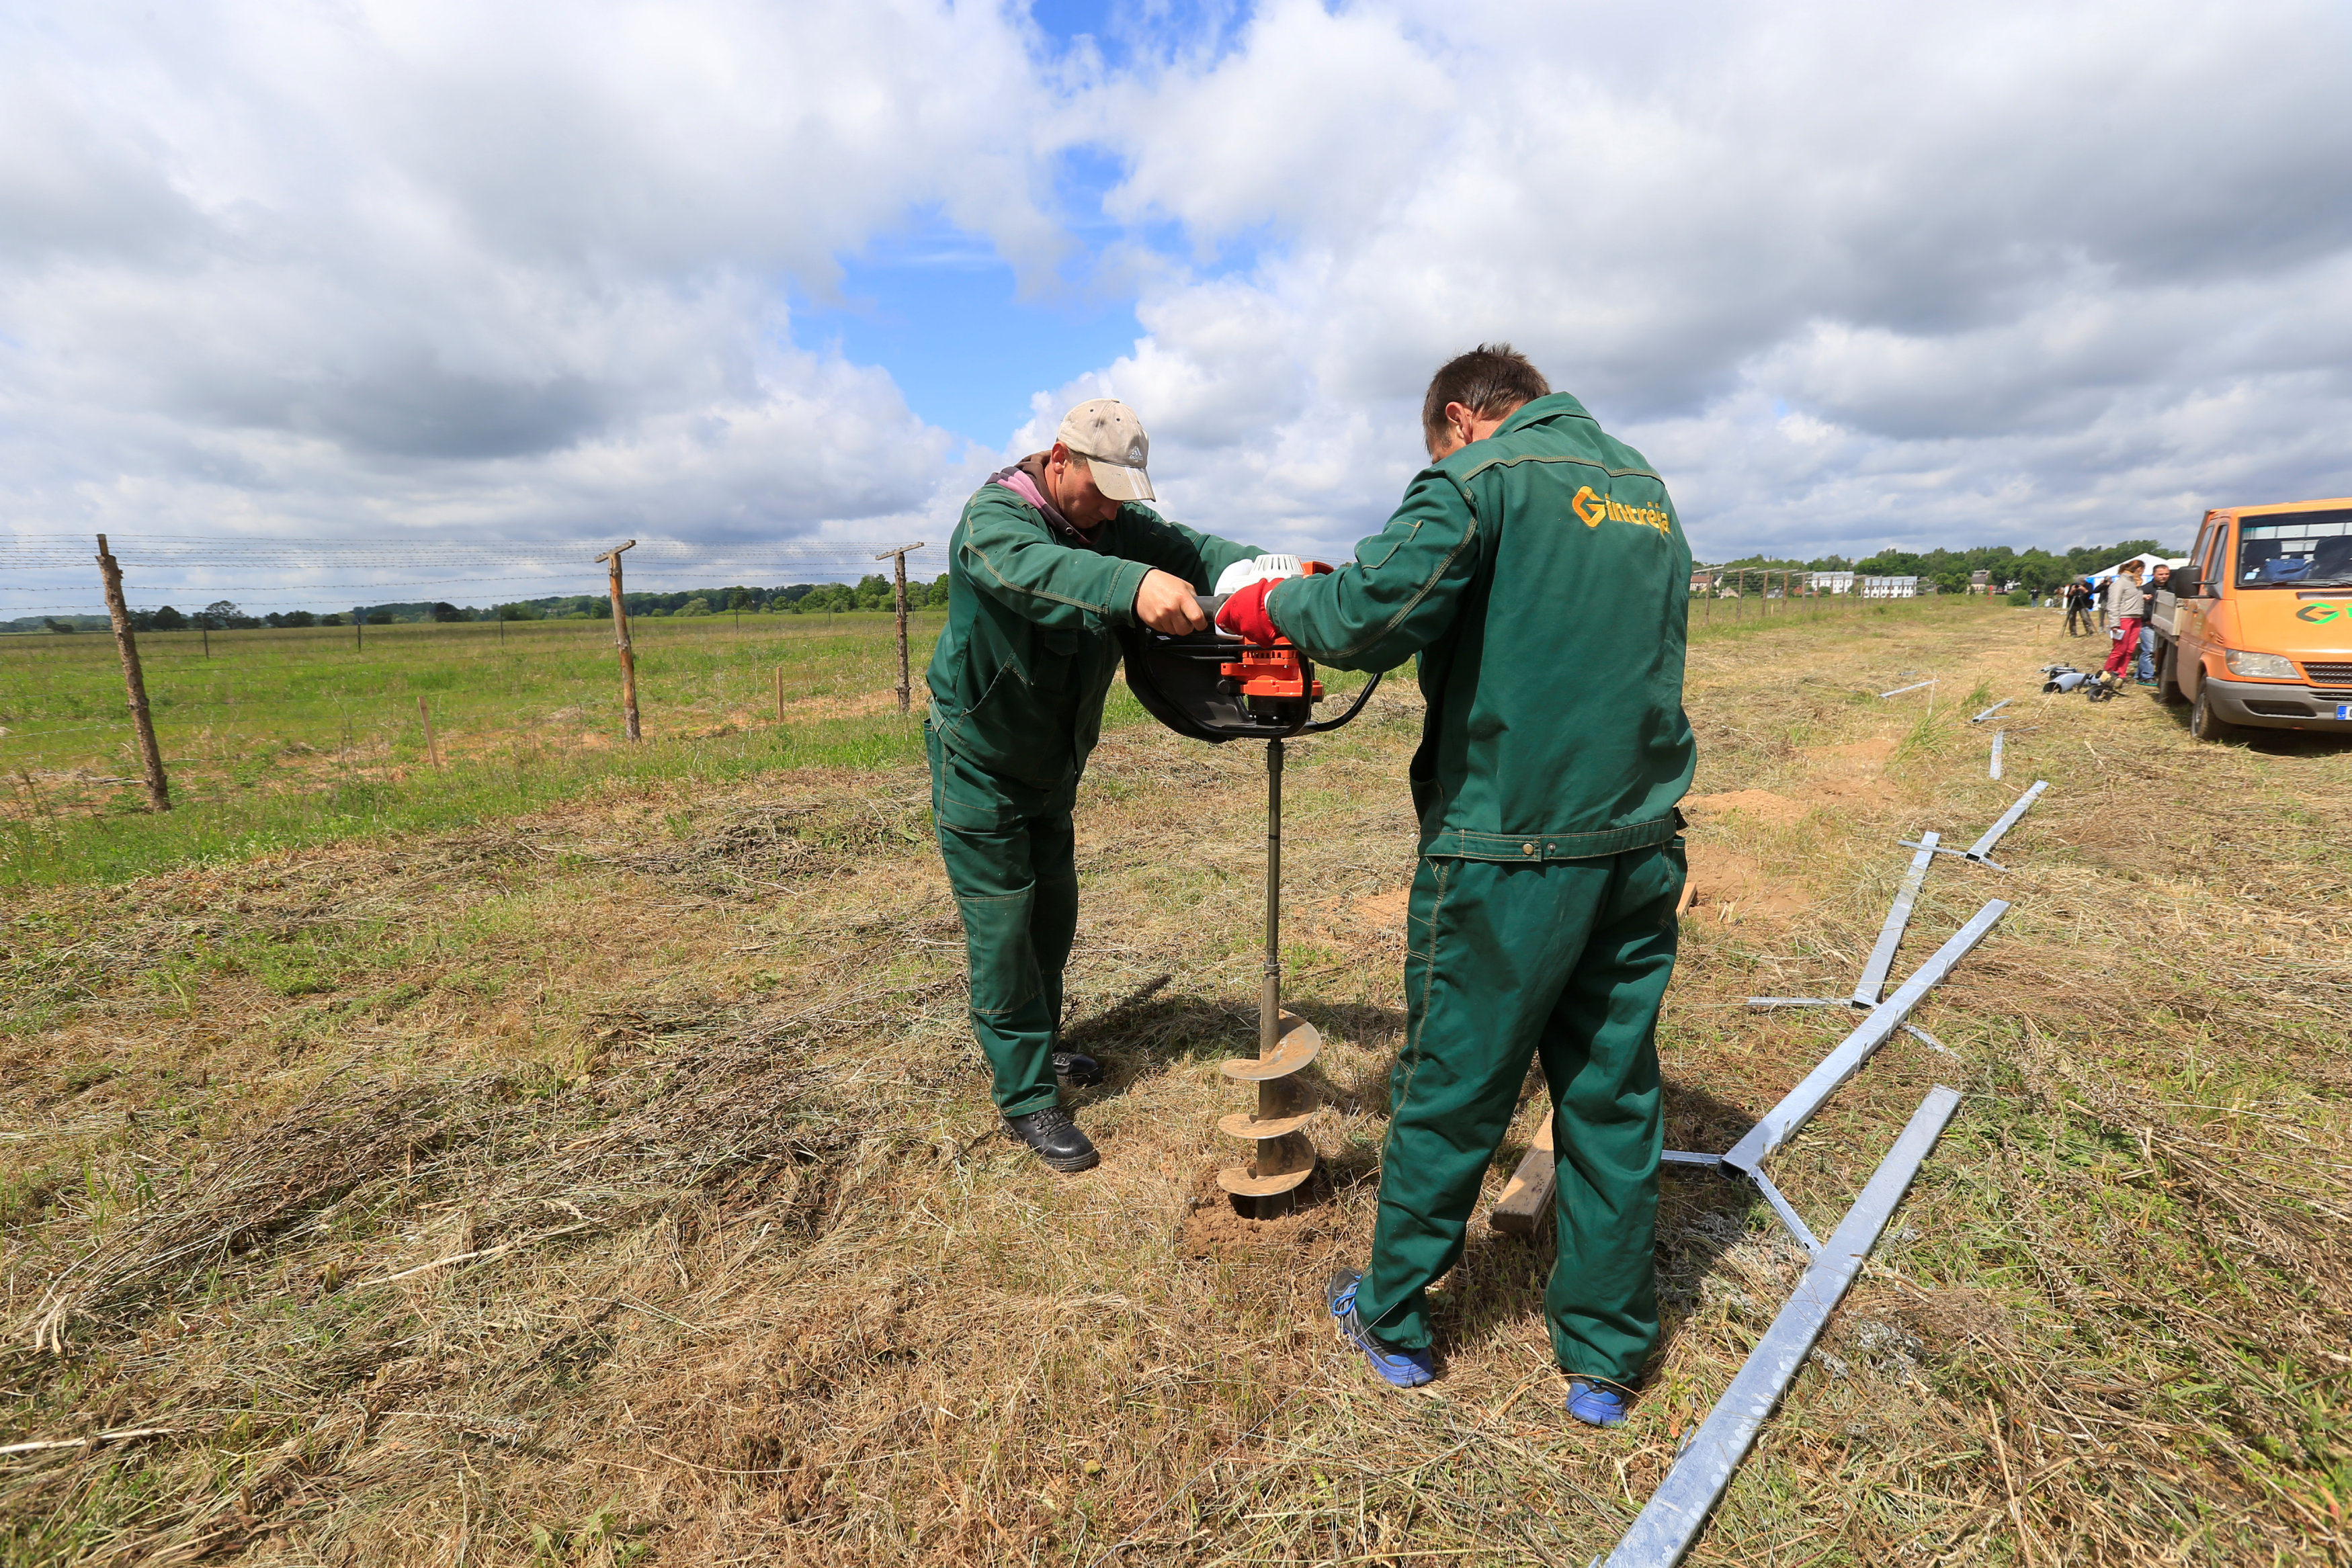 Workers drill a hole for a fence near the Sudargas border crossing point with Russia in Ramoniskiai, Lithuania June 5, 2017